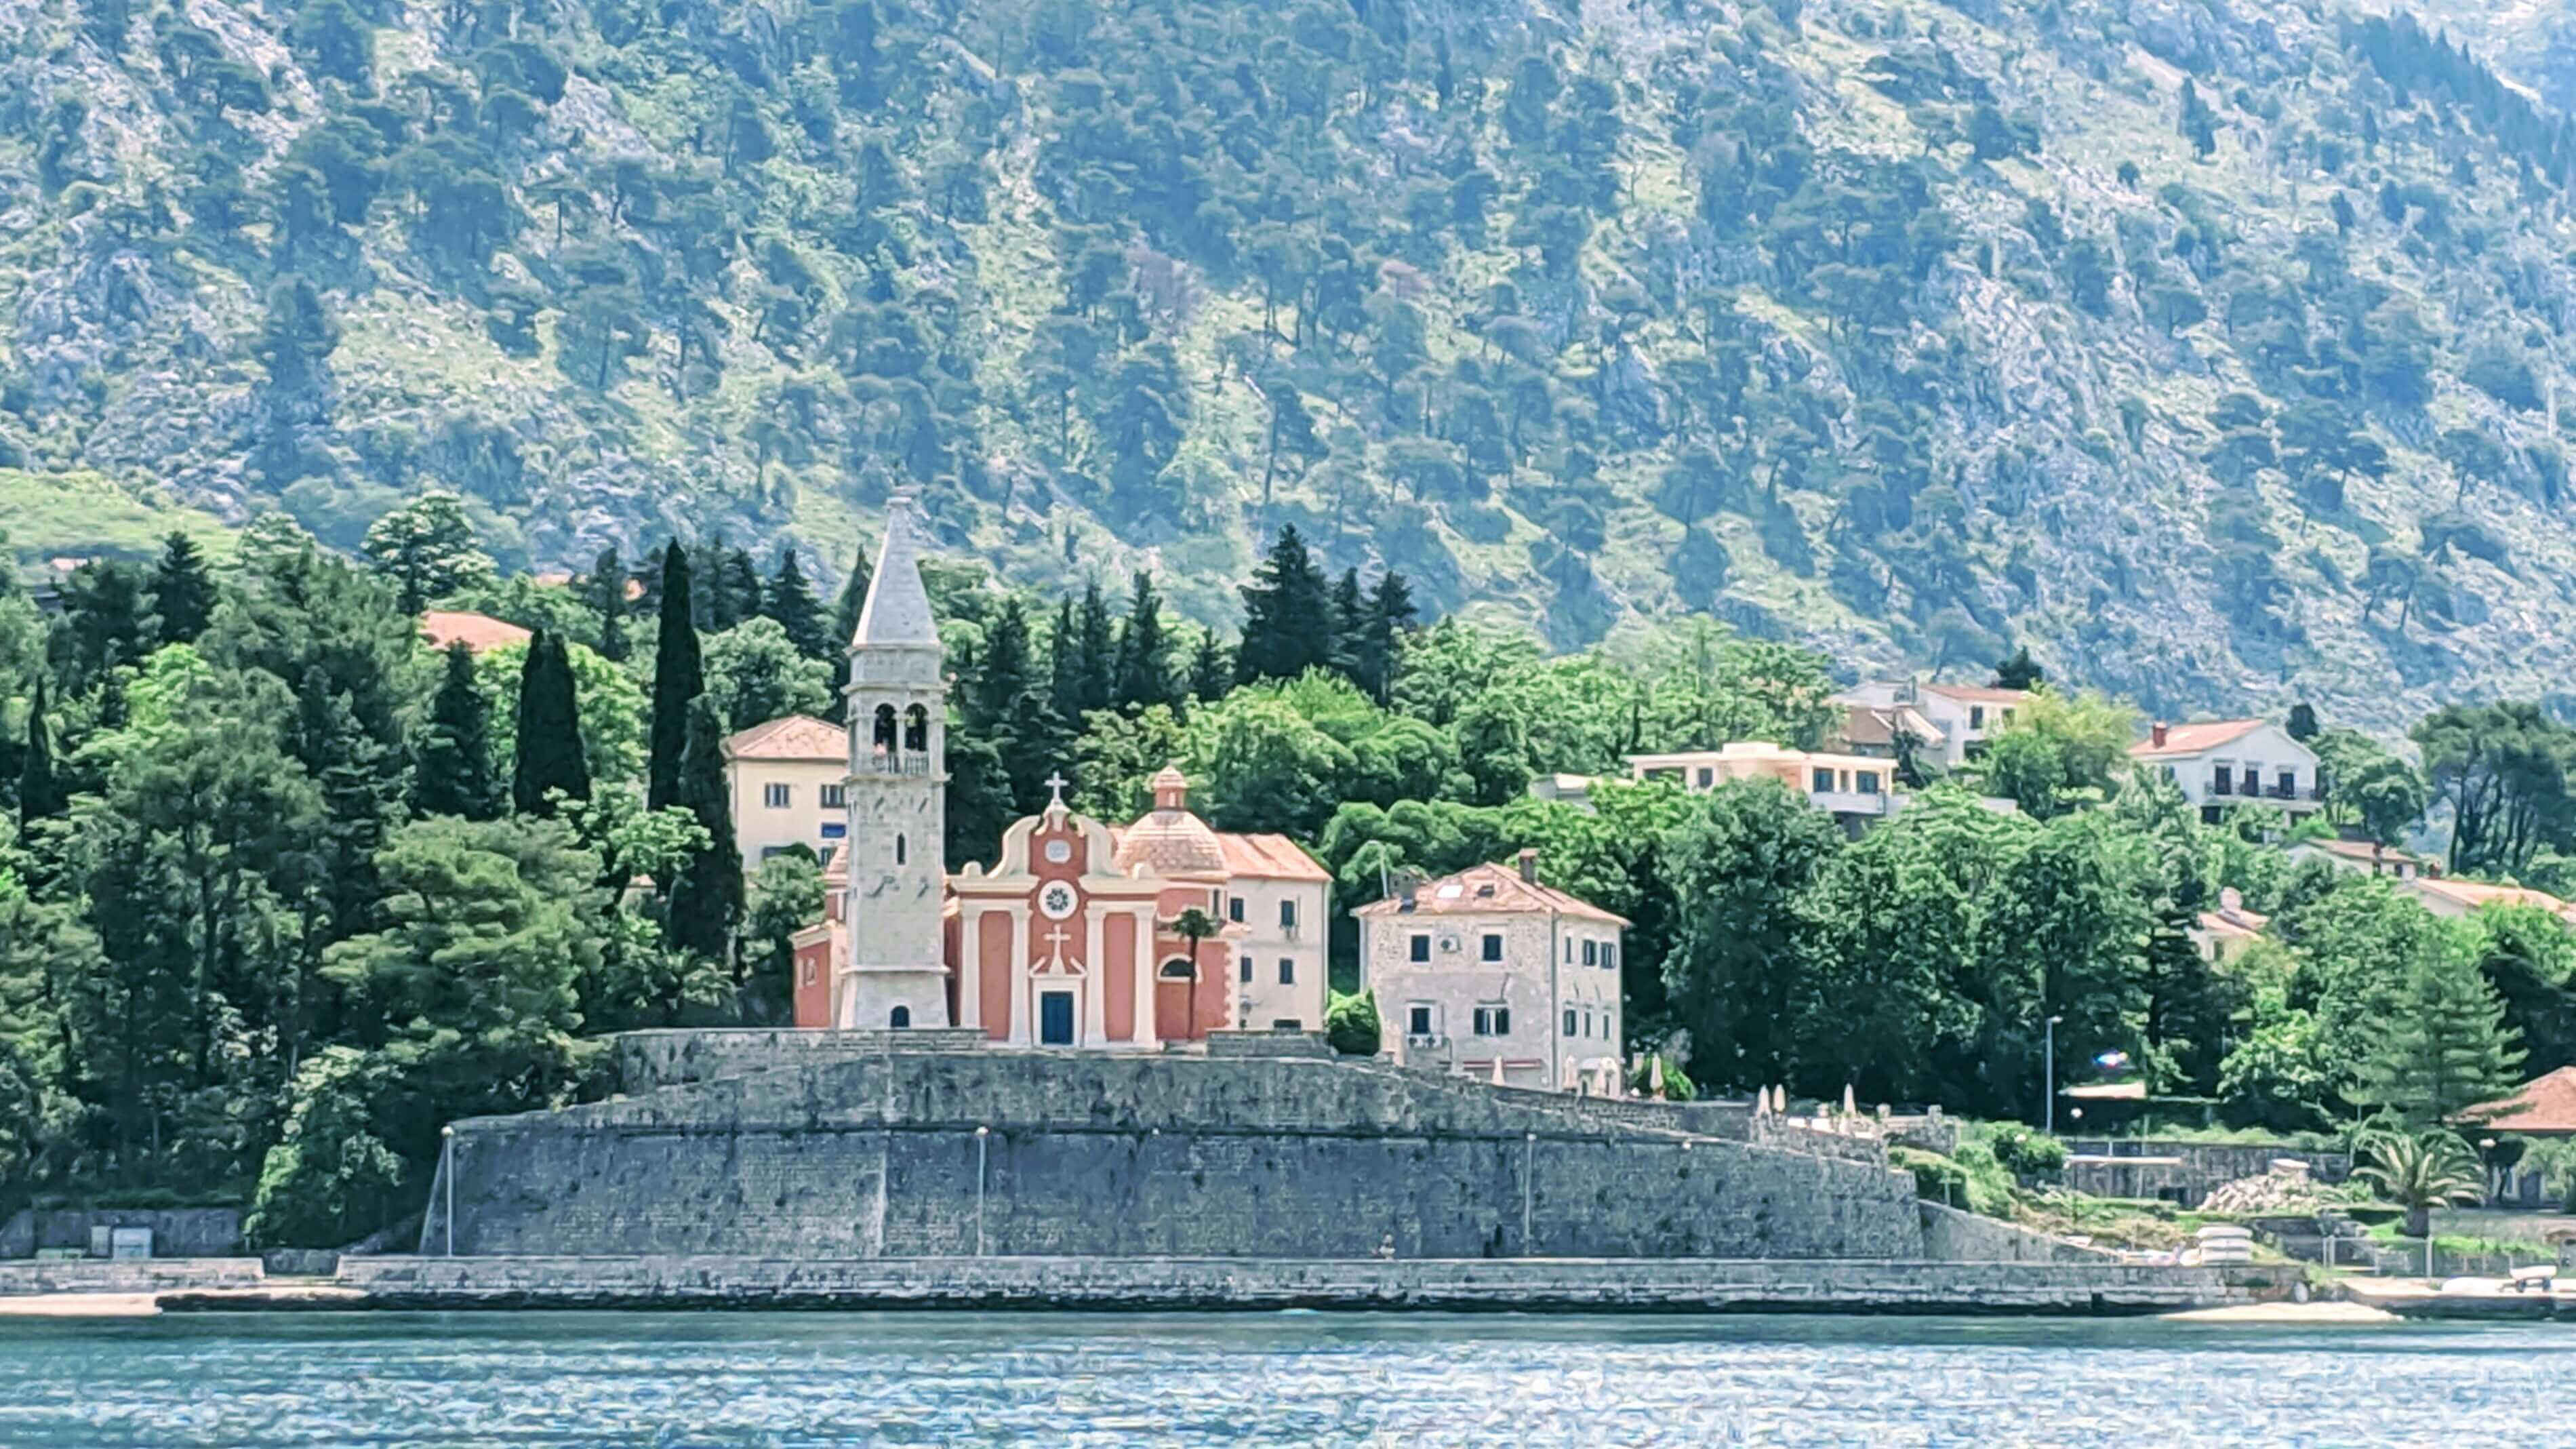 The view of Dobrota from a boat.  A boat ride around Kotor Bay is one of the top things to see and do in Montenegro.